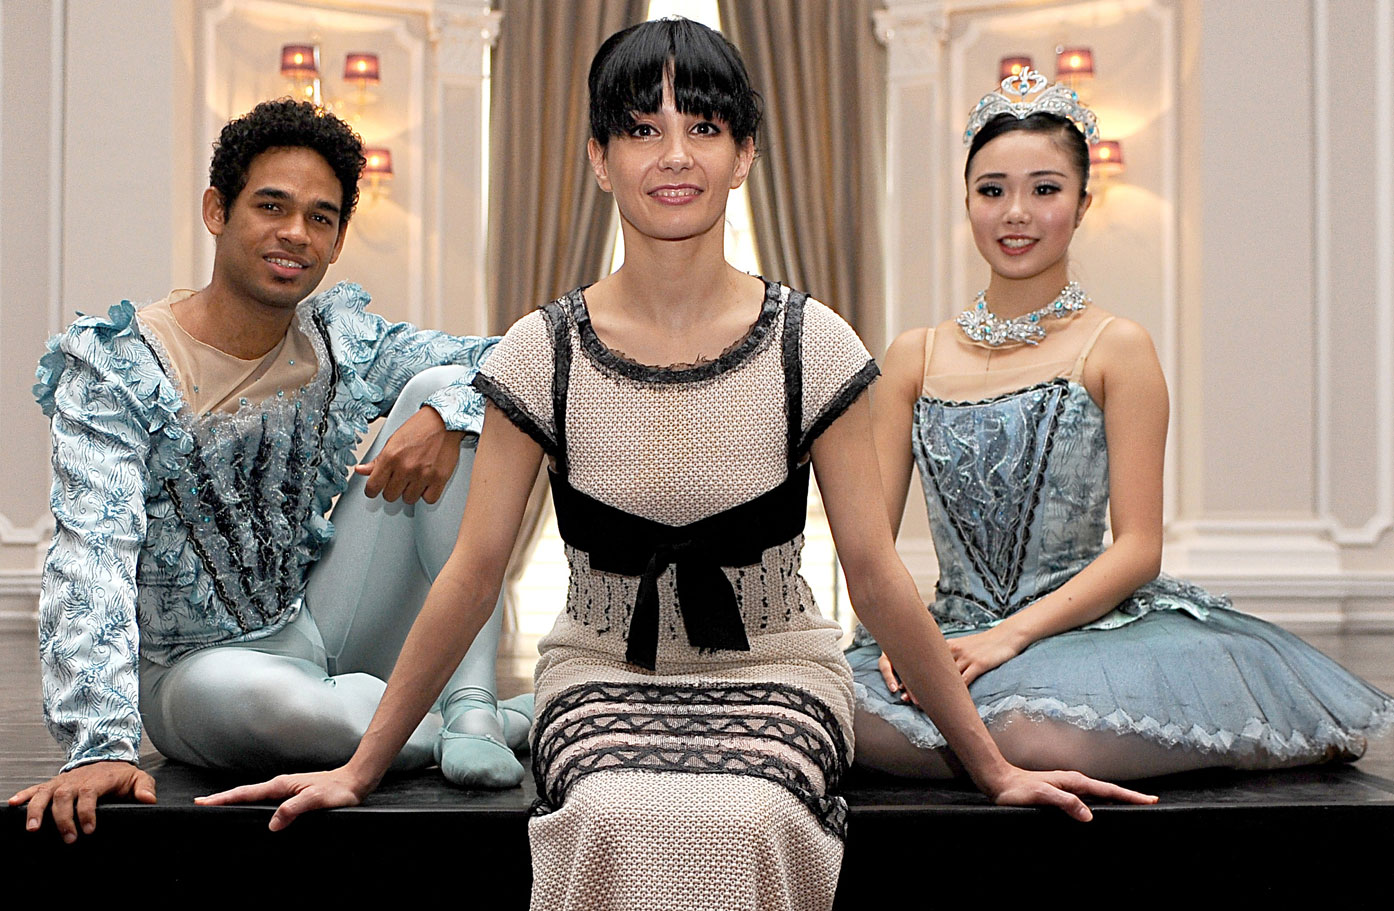 Artistic Director Tamara Rojo announces the English Naational Ballet new season. Tamara Rojo on stage at The Corinthia Hotel, London with Yonah Acosta Shiori Kase.